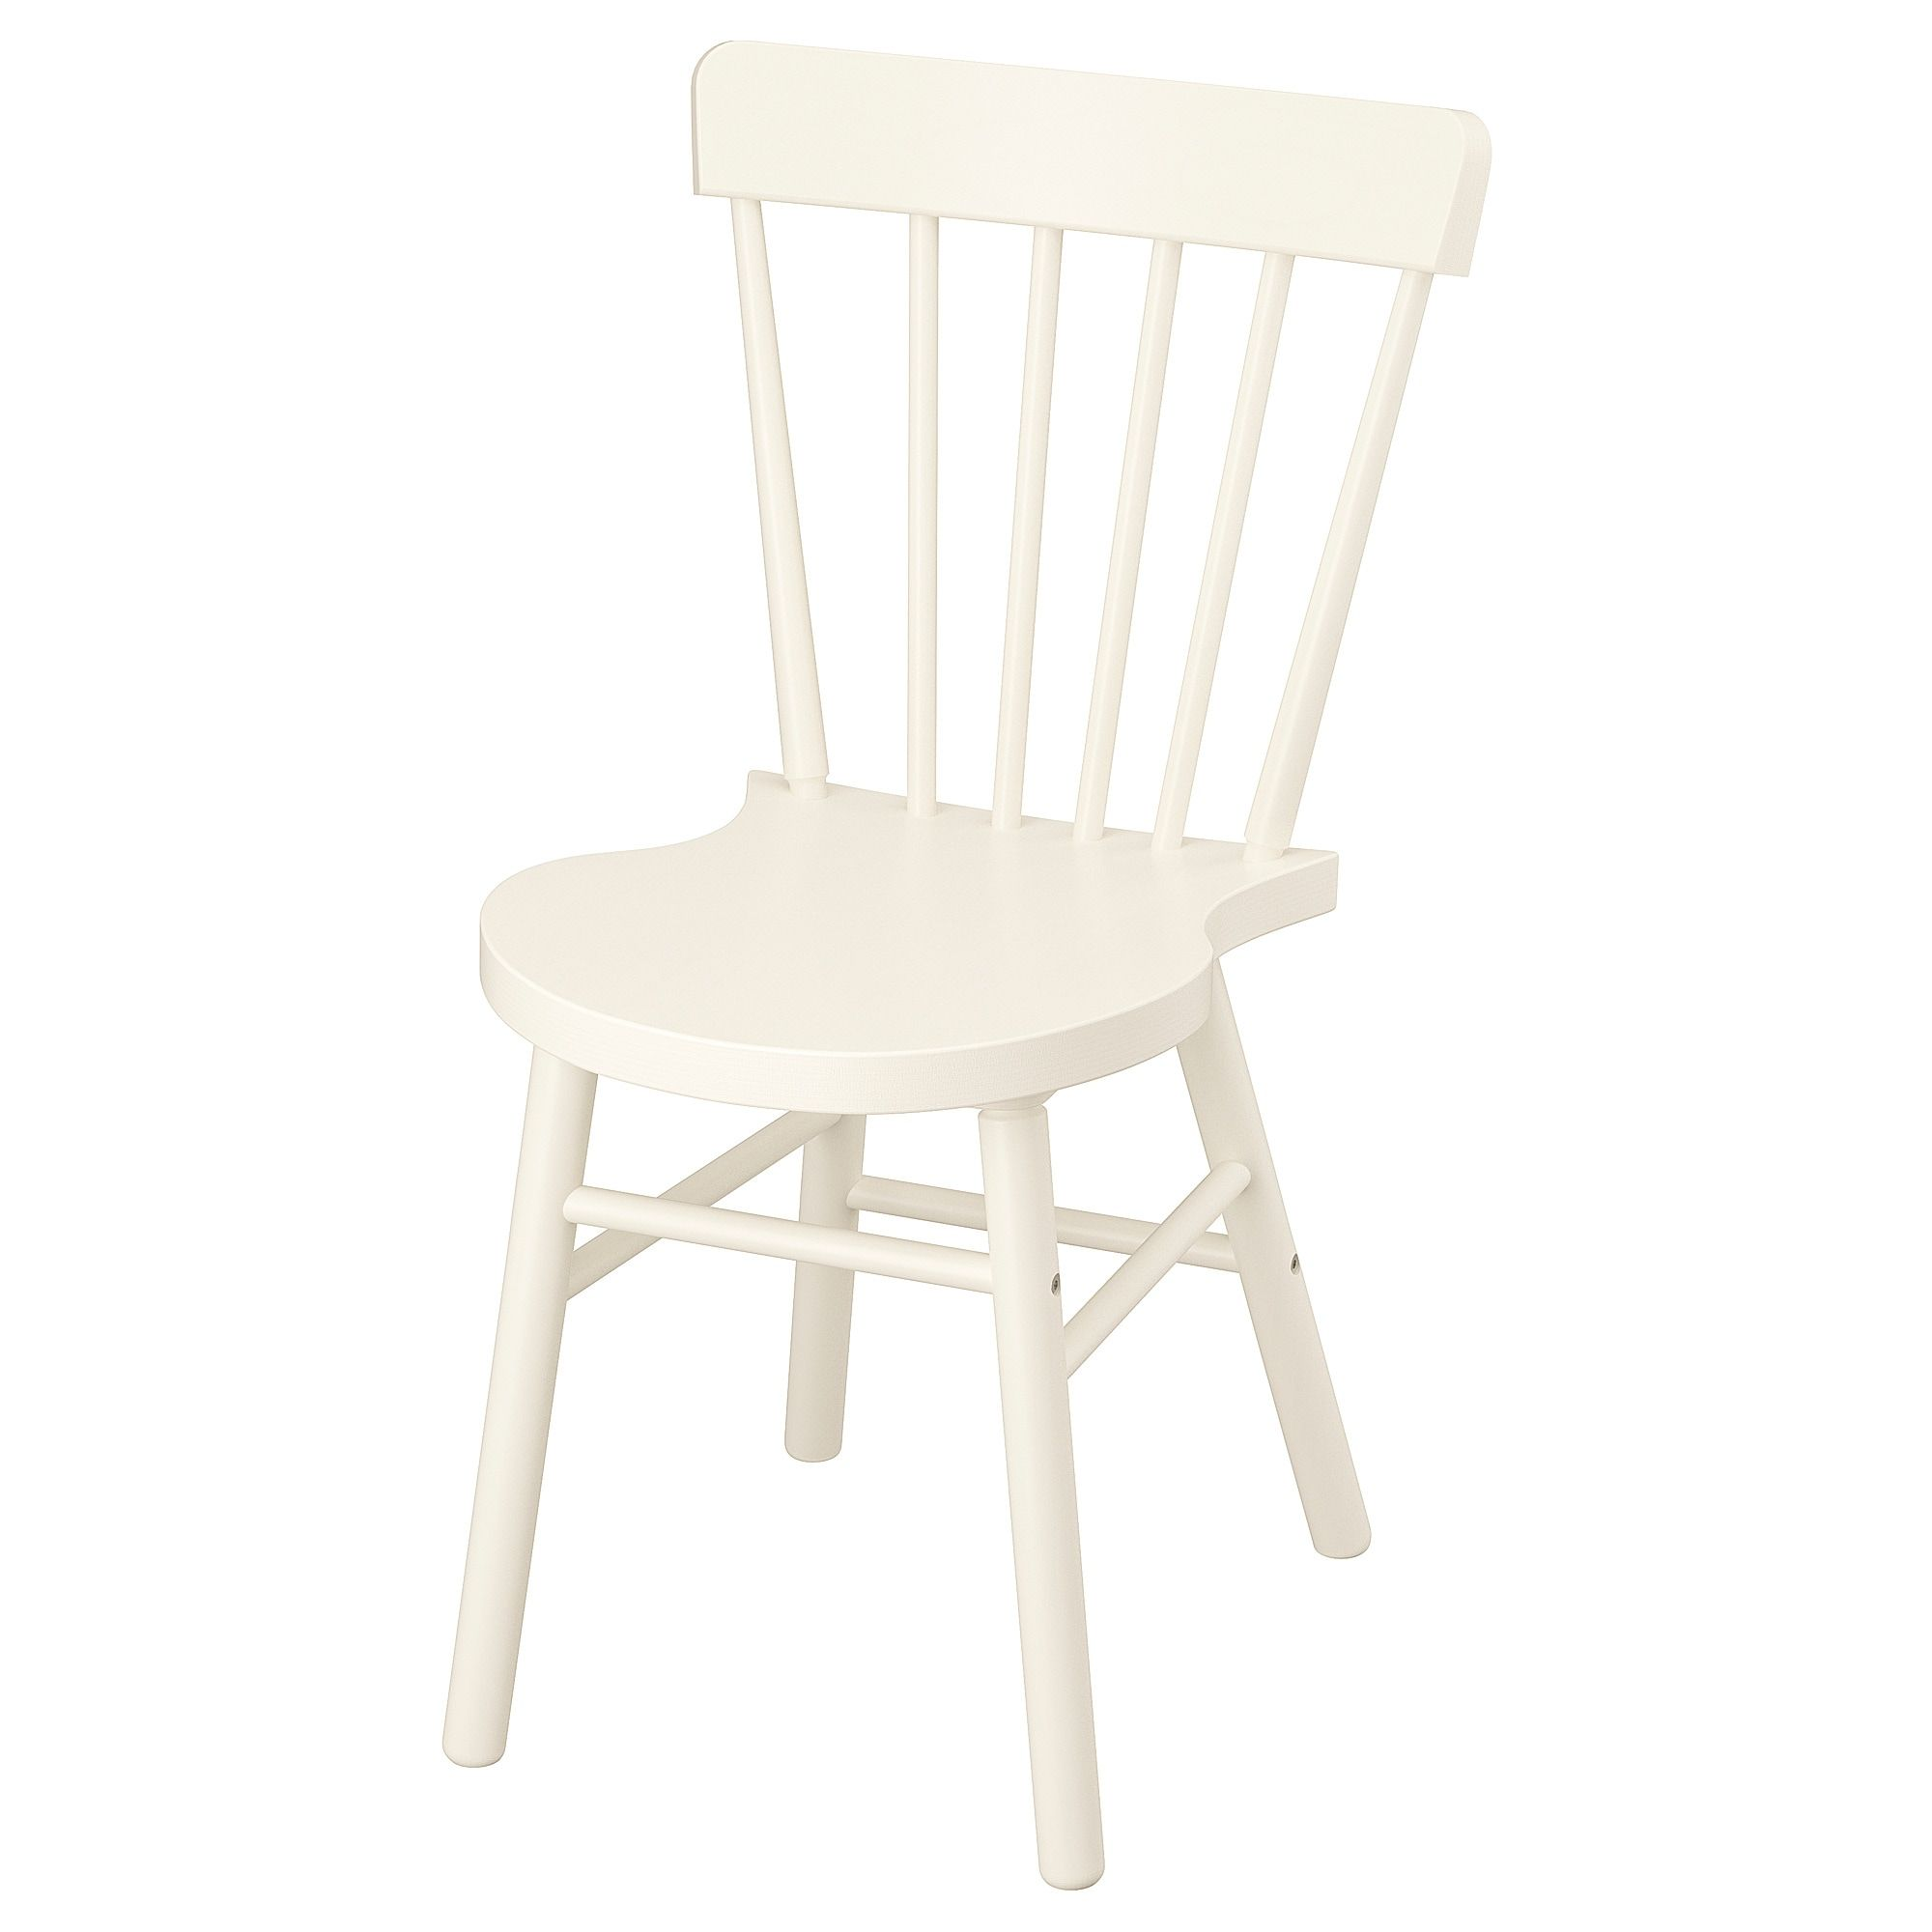 Norraryd Chaise Blanc Chaise Fauteuil Ikea Chaise